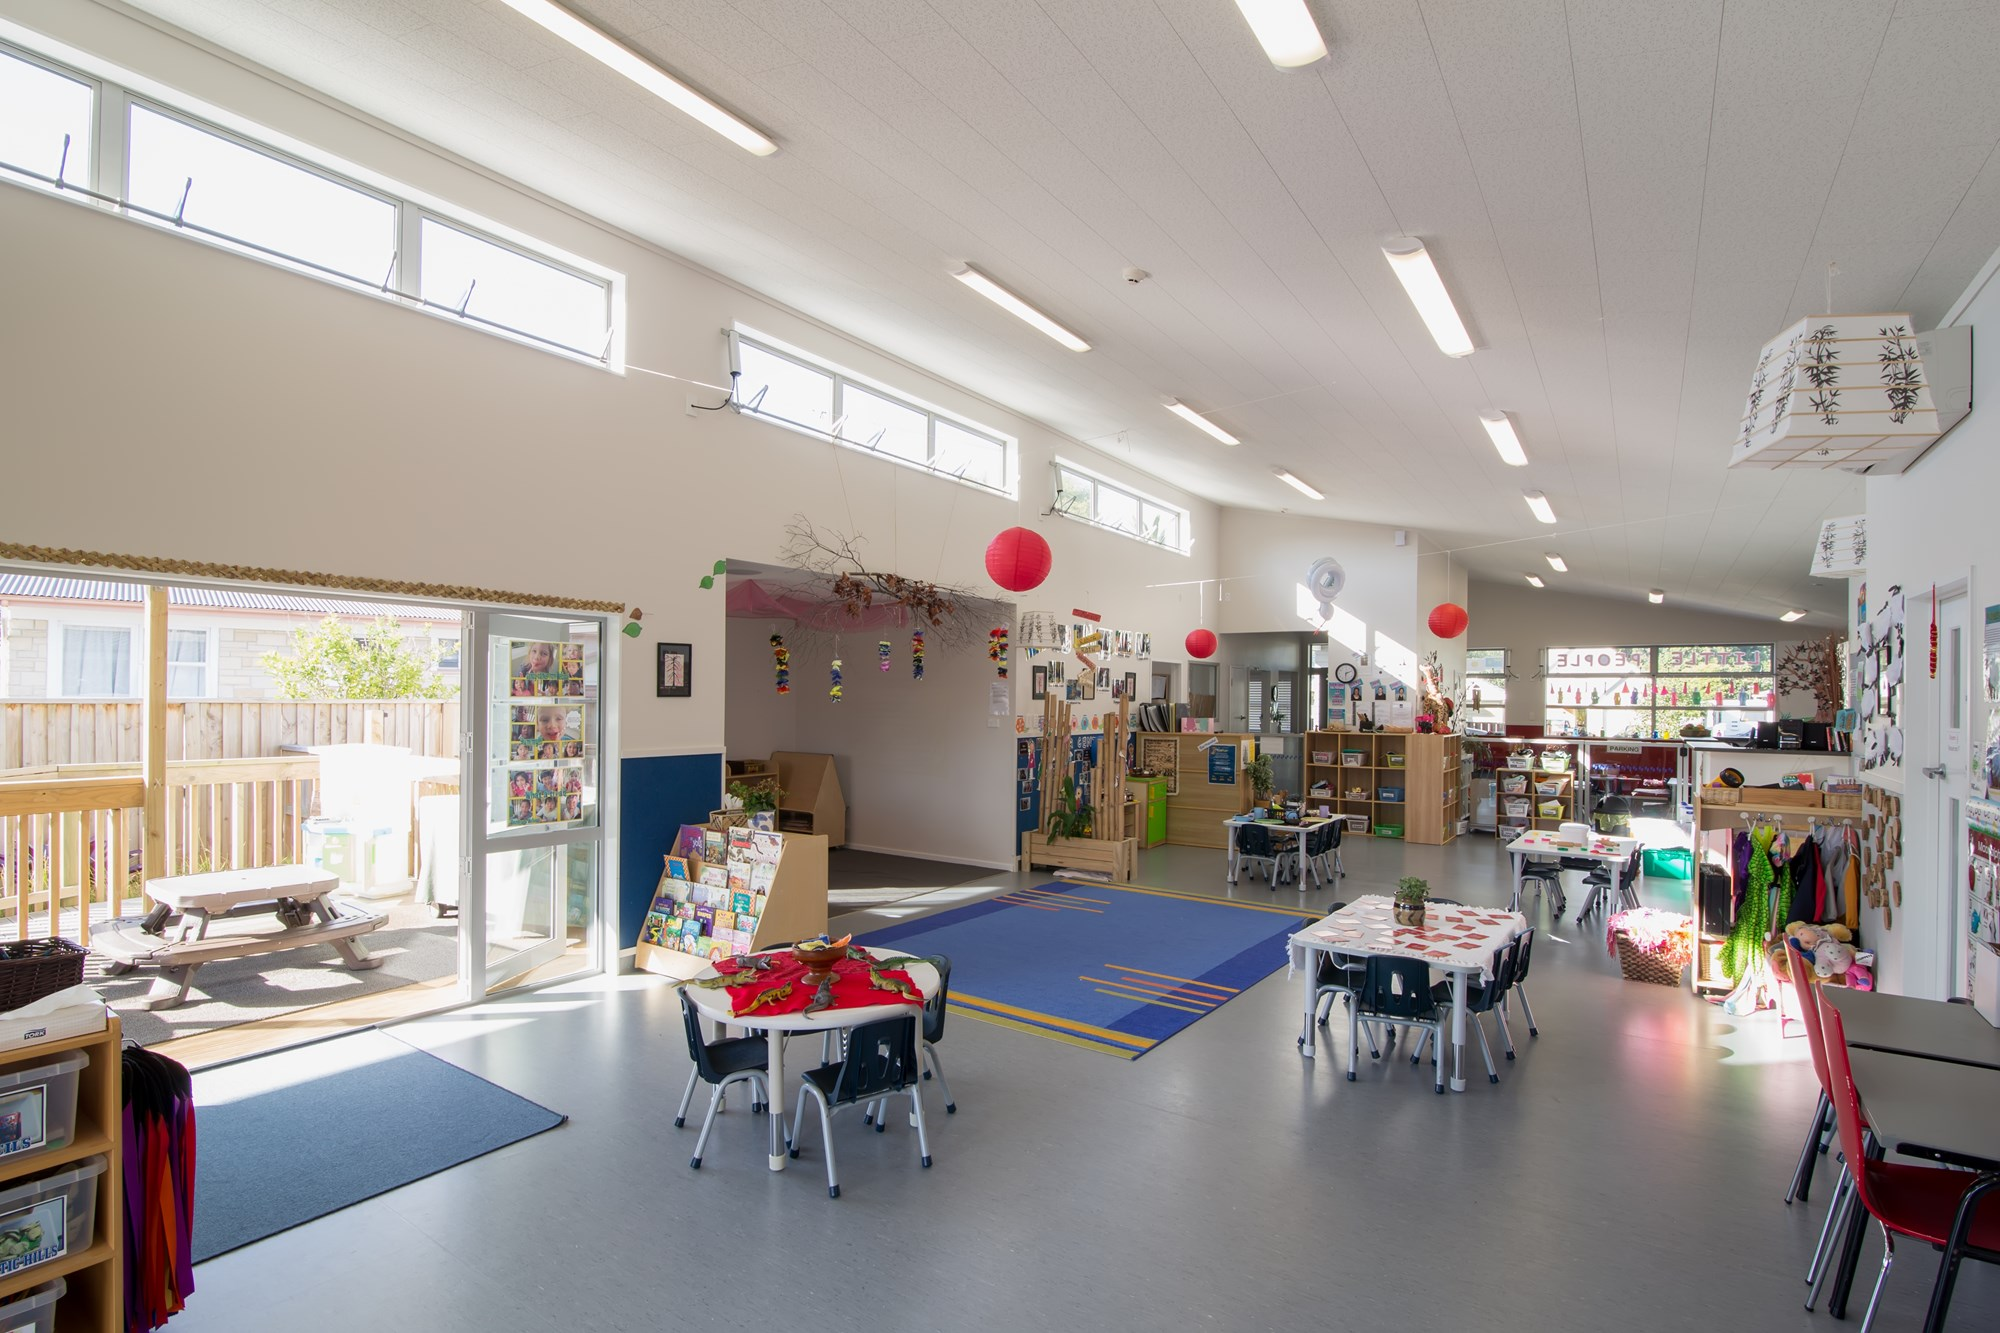 Little People Childcare - Glenfield - Chartwell Ave - Glenfield (2)